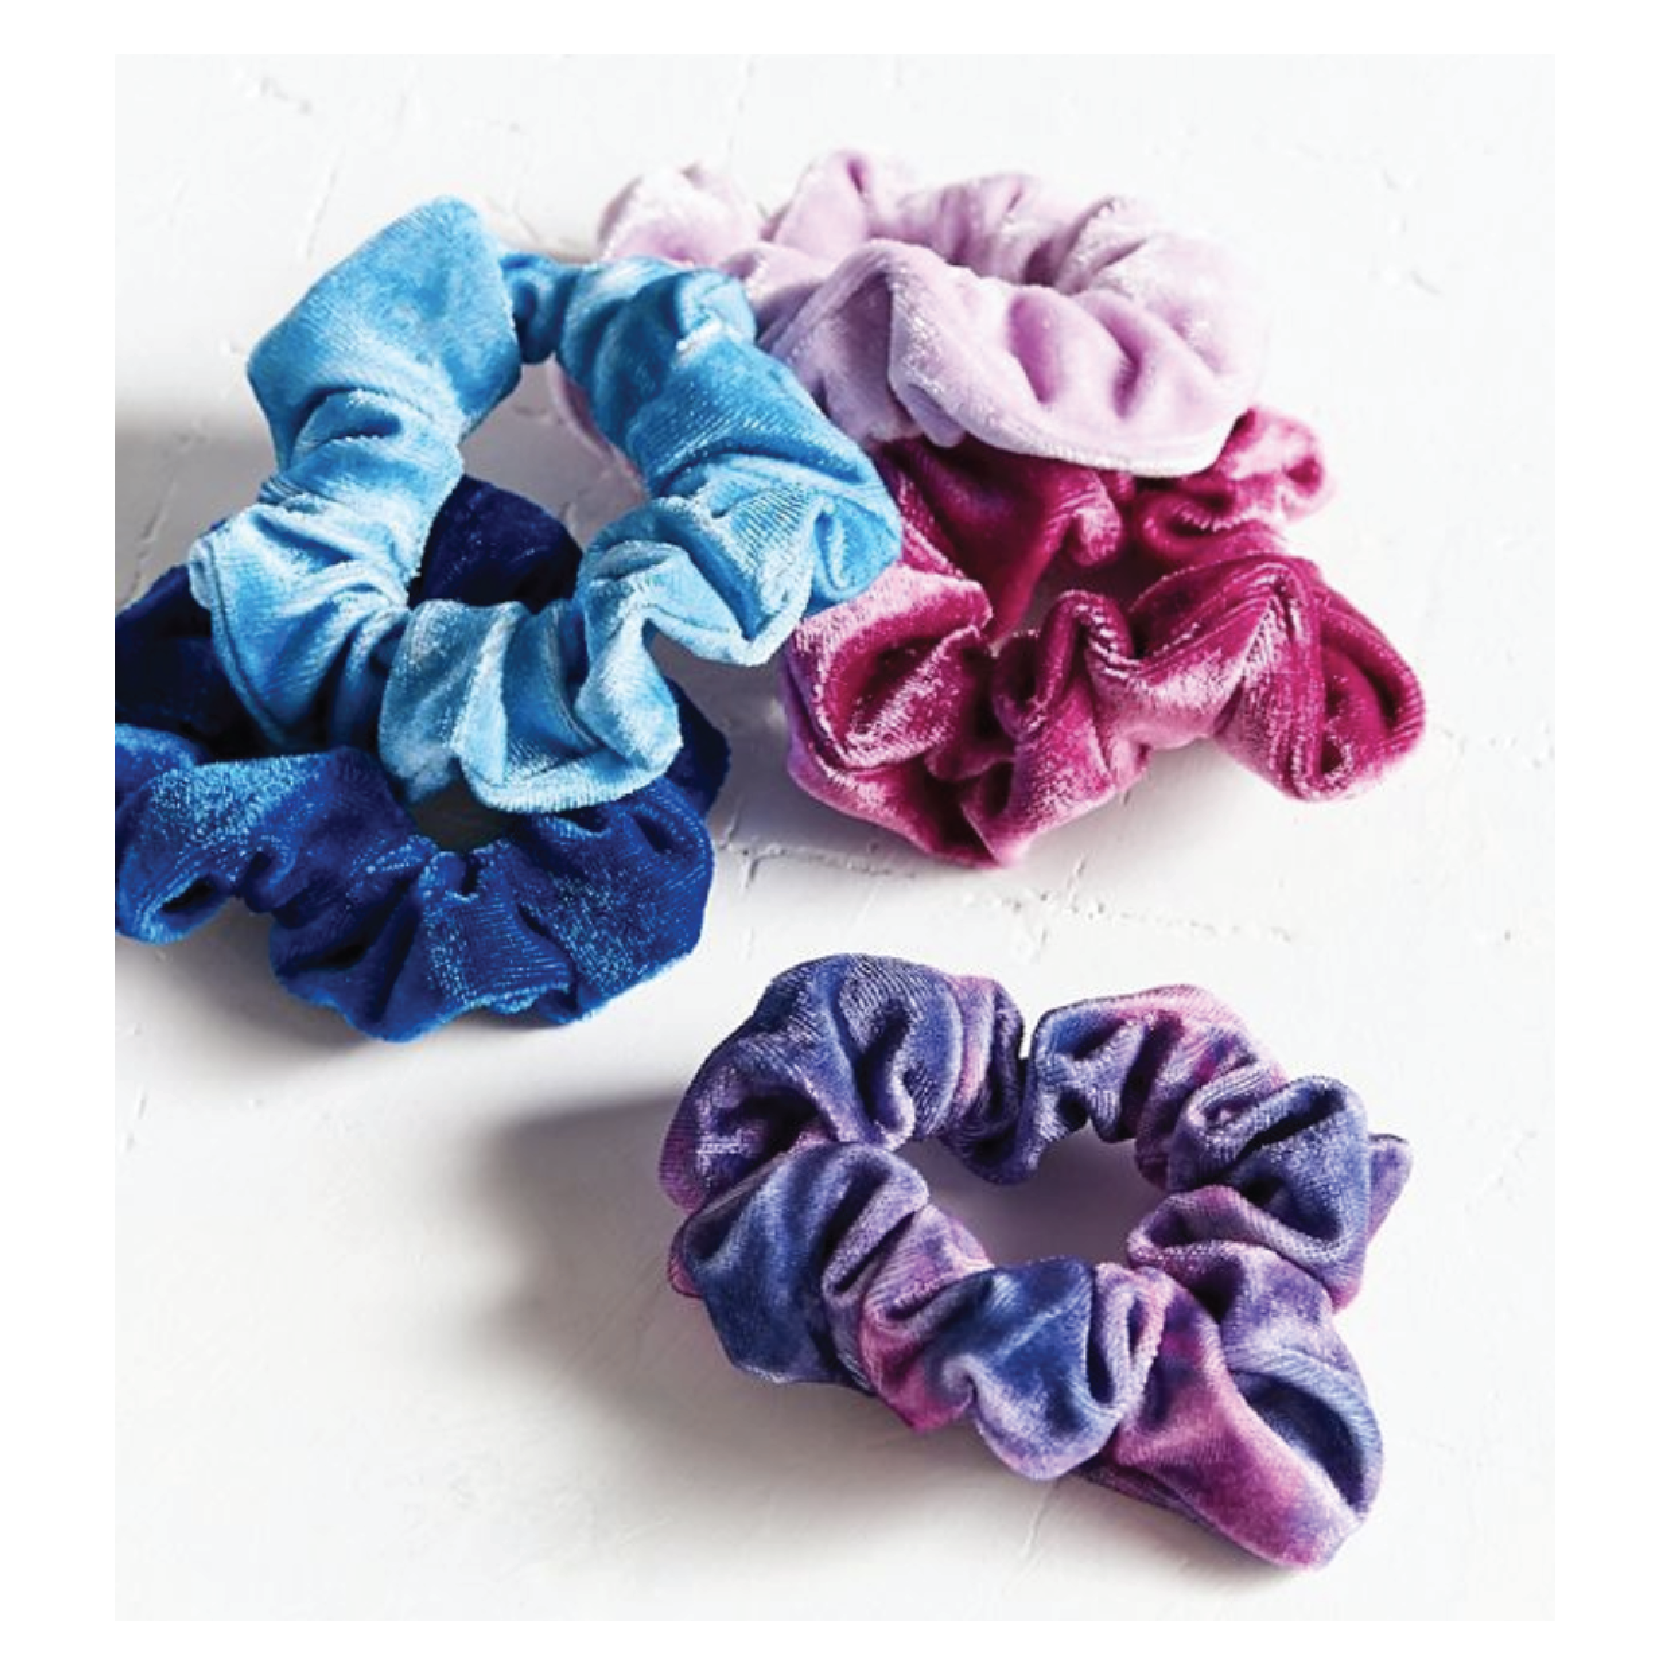 Velvet Hair Scrunchie Set - $12 on Urban OutfittersThe 90s are back people! Stuff your stocking with scrunchies this season.